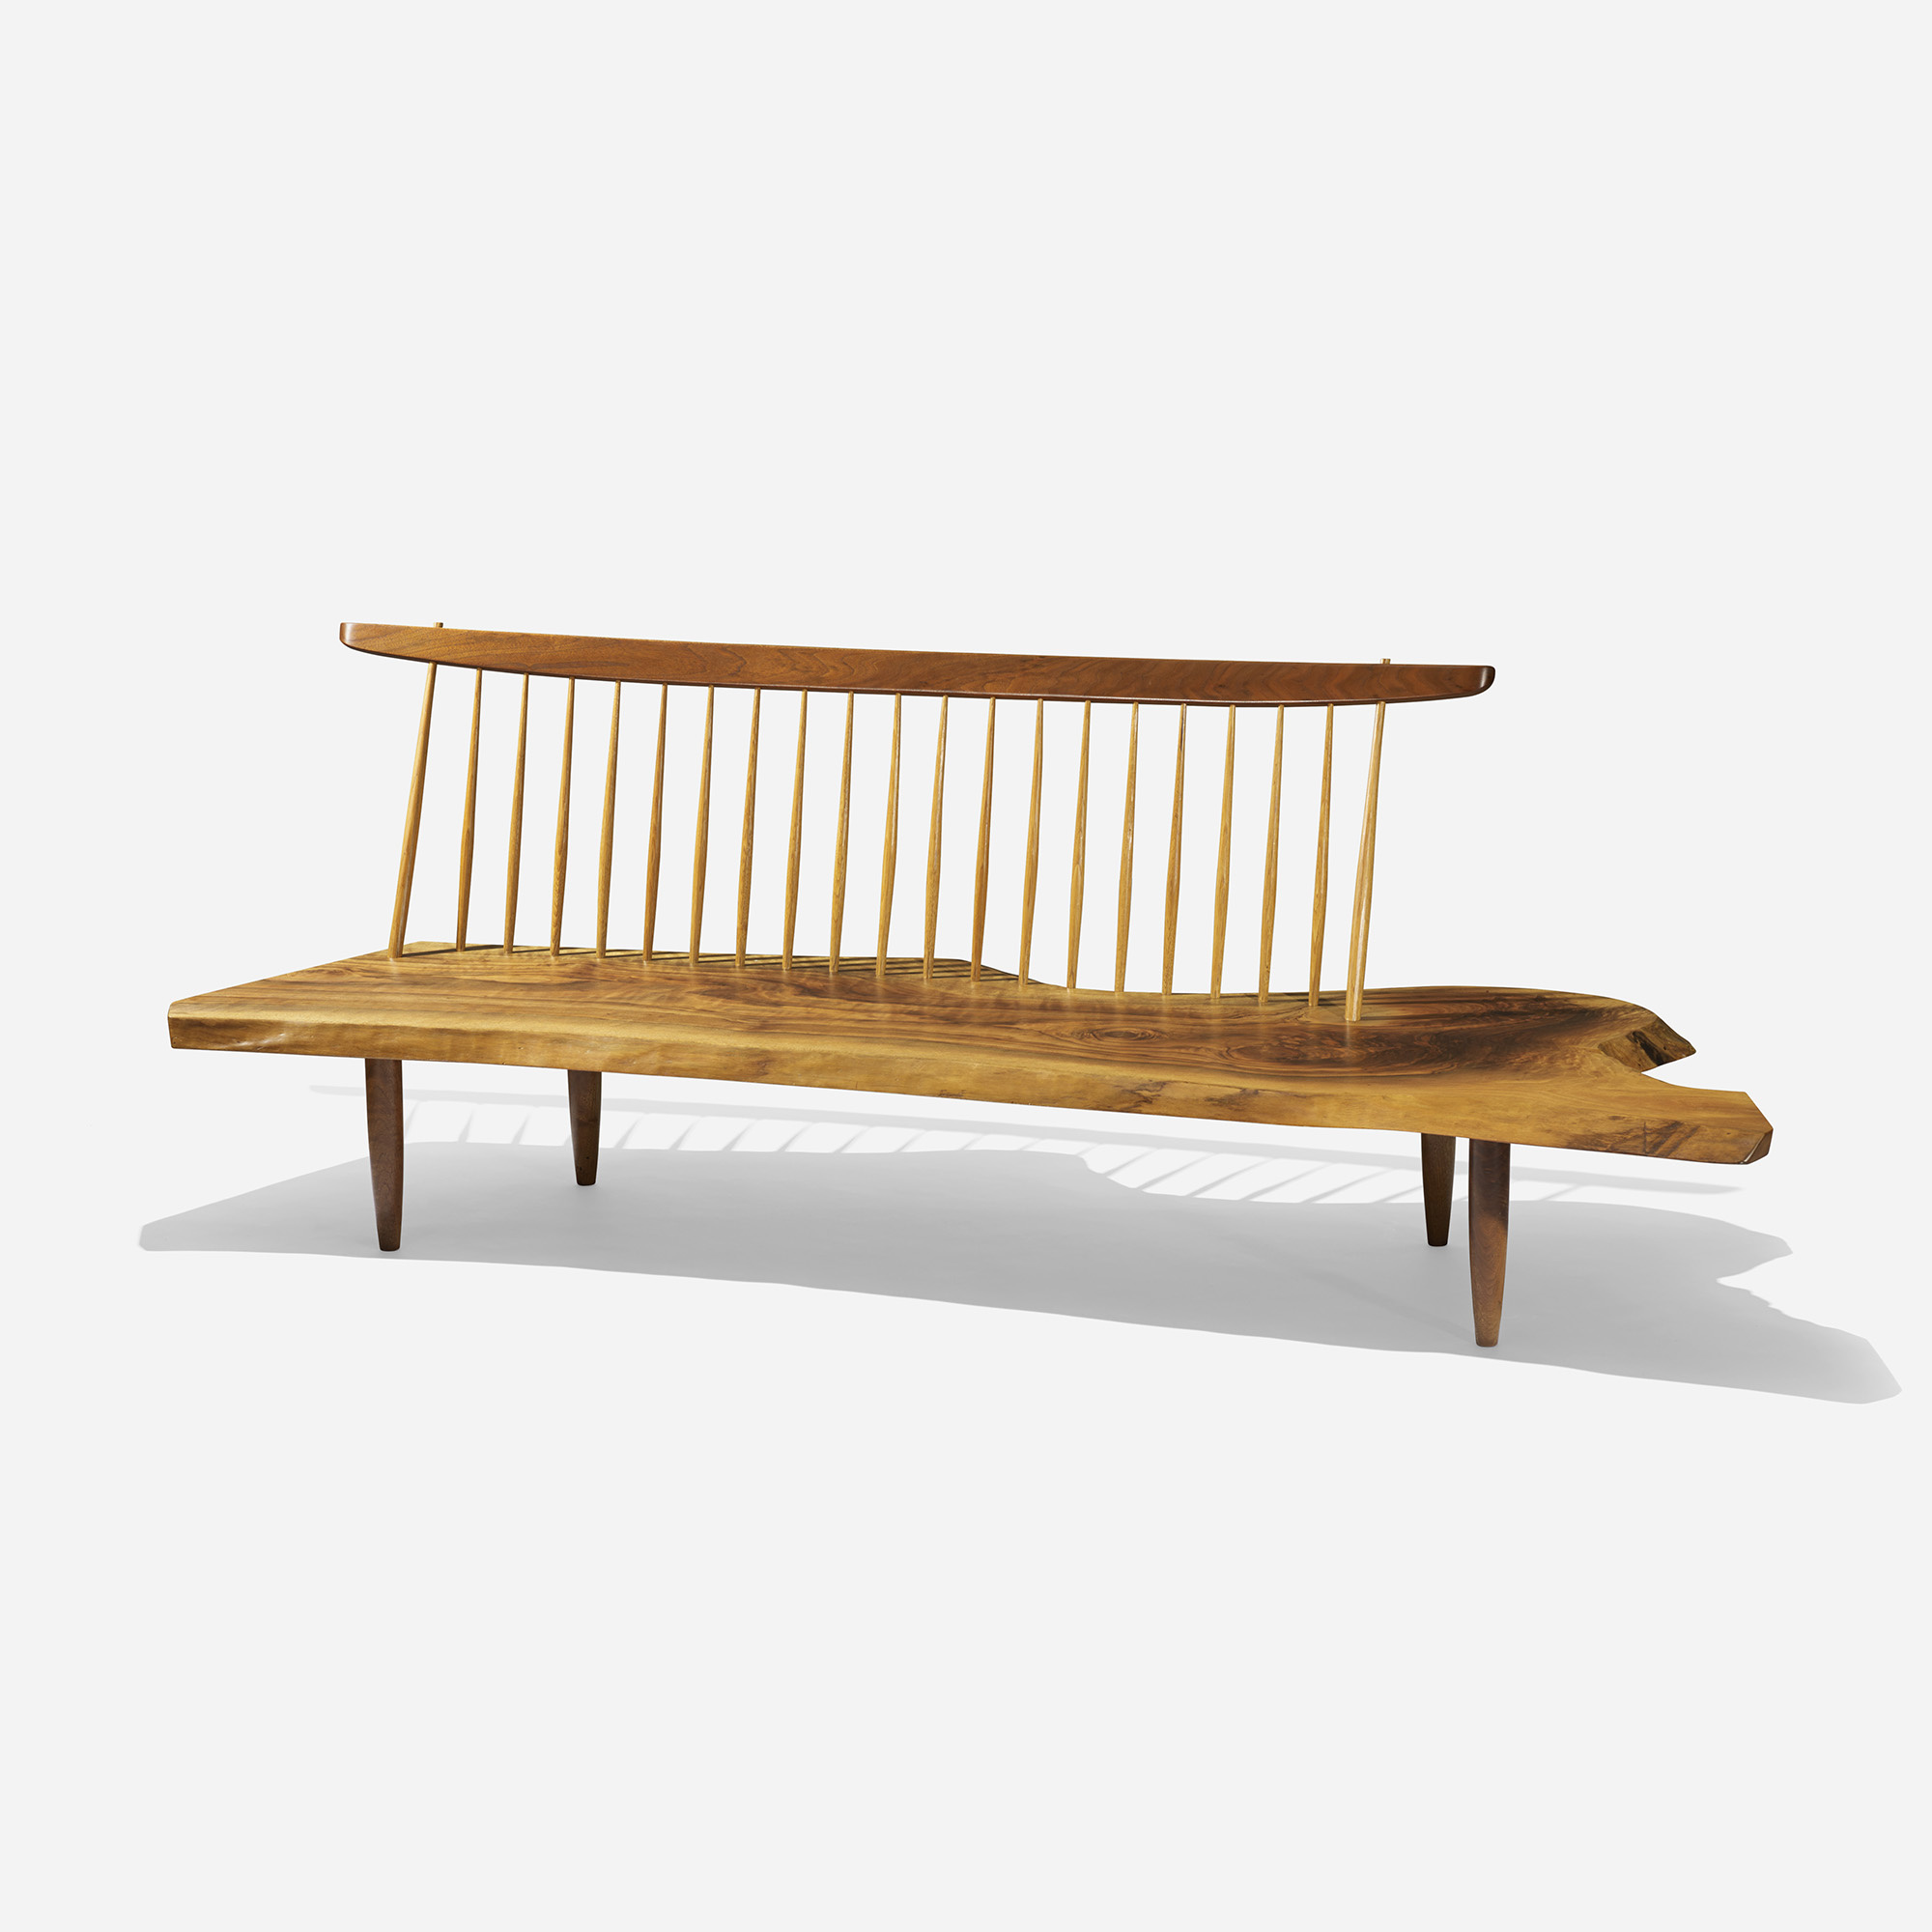 Spindle Bench Hollywood Swank Vanity Bench Main Image 1 Of 7 Images Rustic Spindle Bench